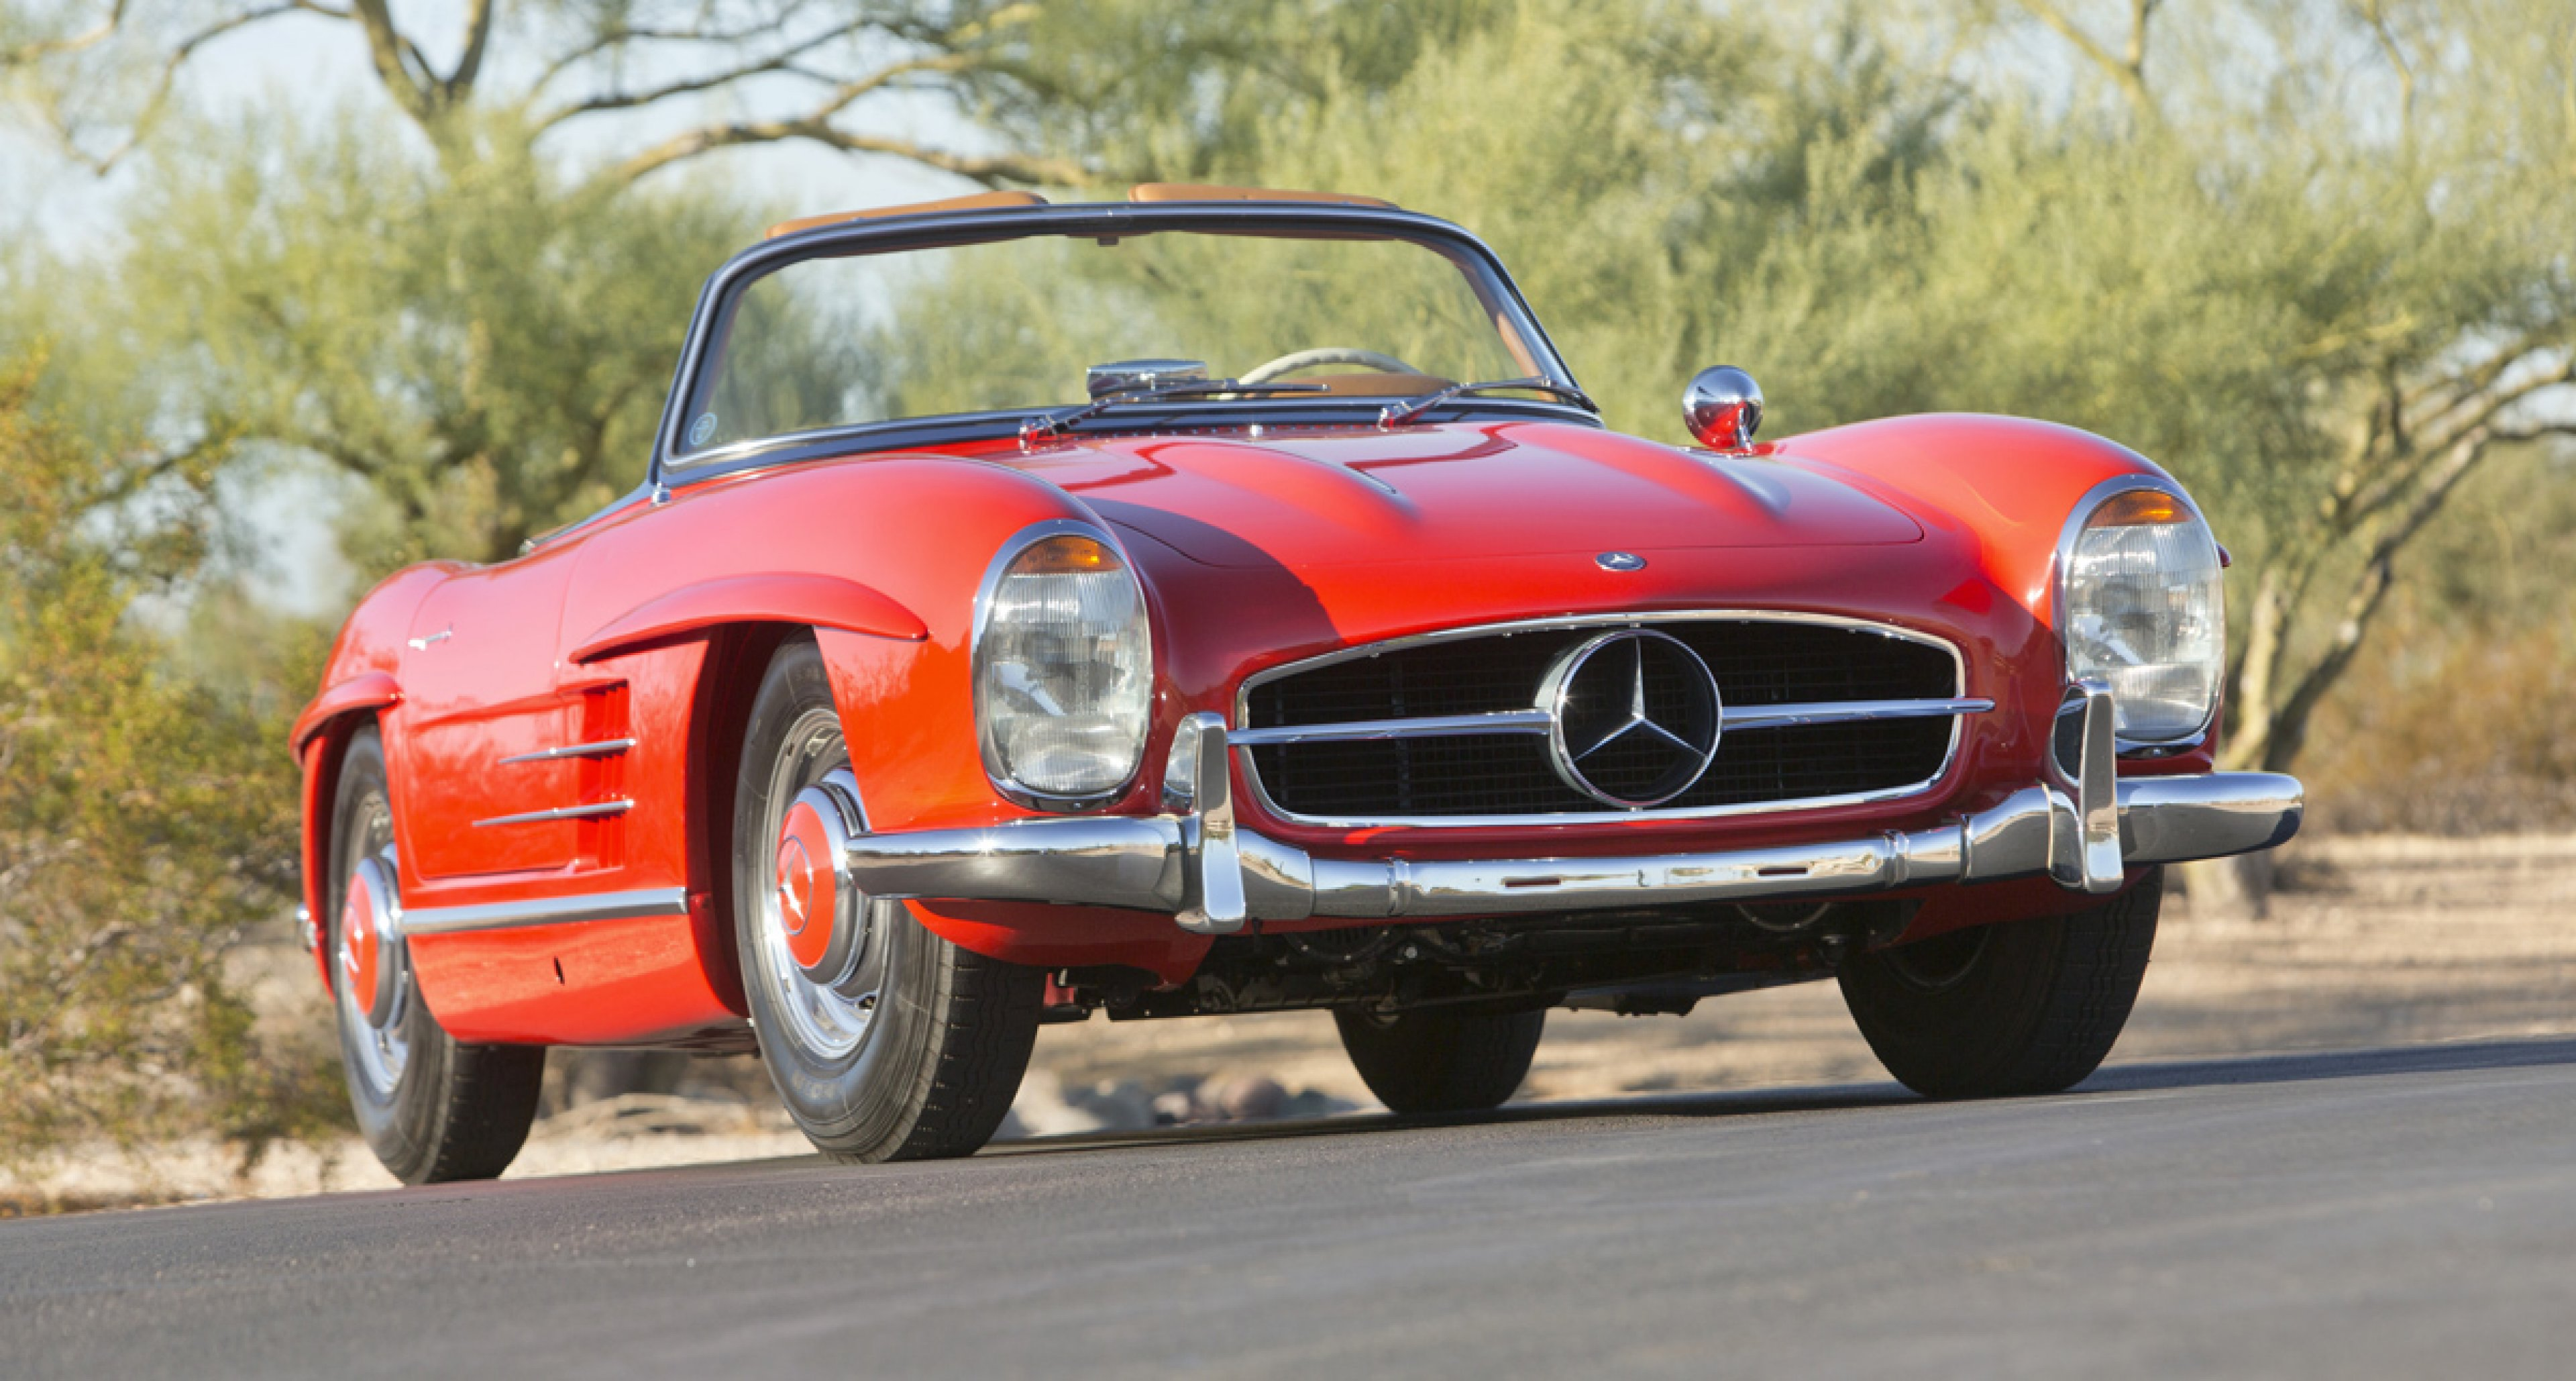 1961 Mercedes-Benz 300SL Roadster with Hardtop / $1,000,000 - $1,250,000 (Lot 125)